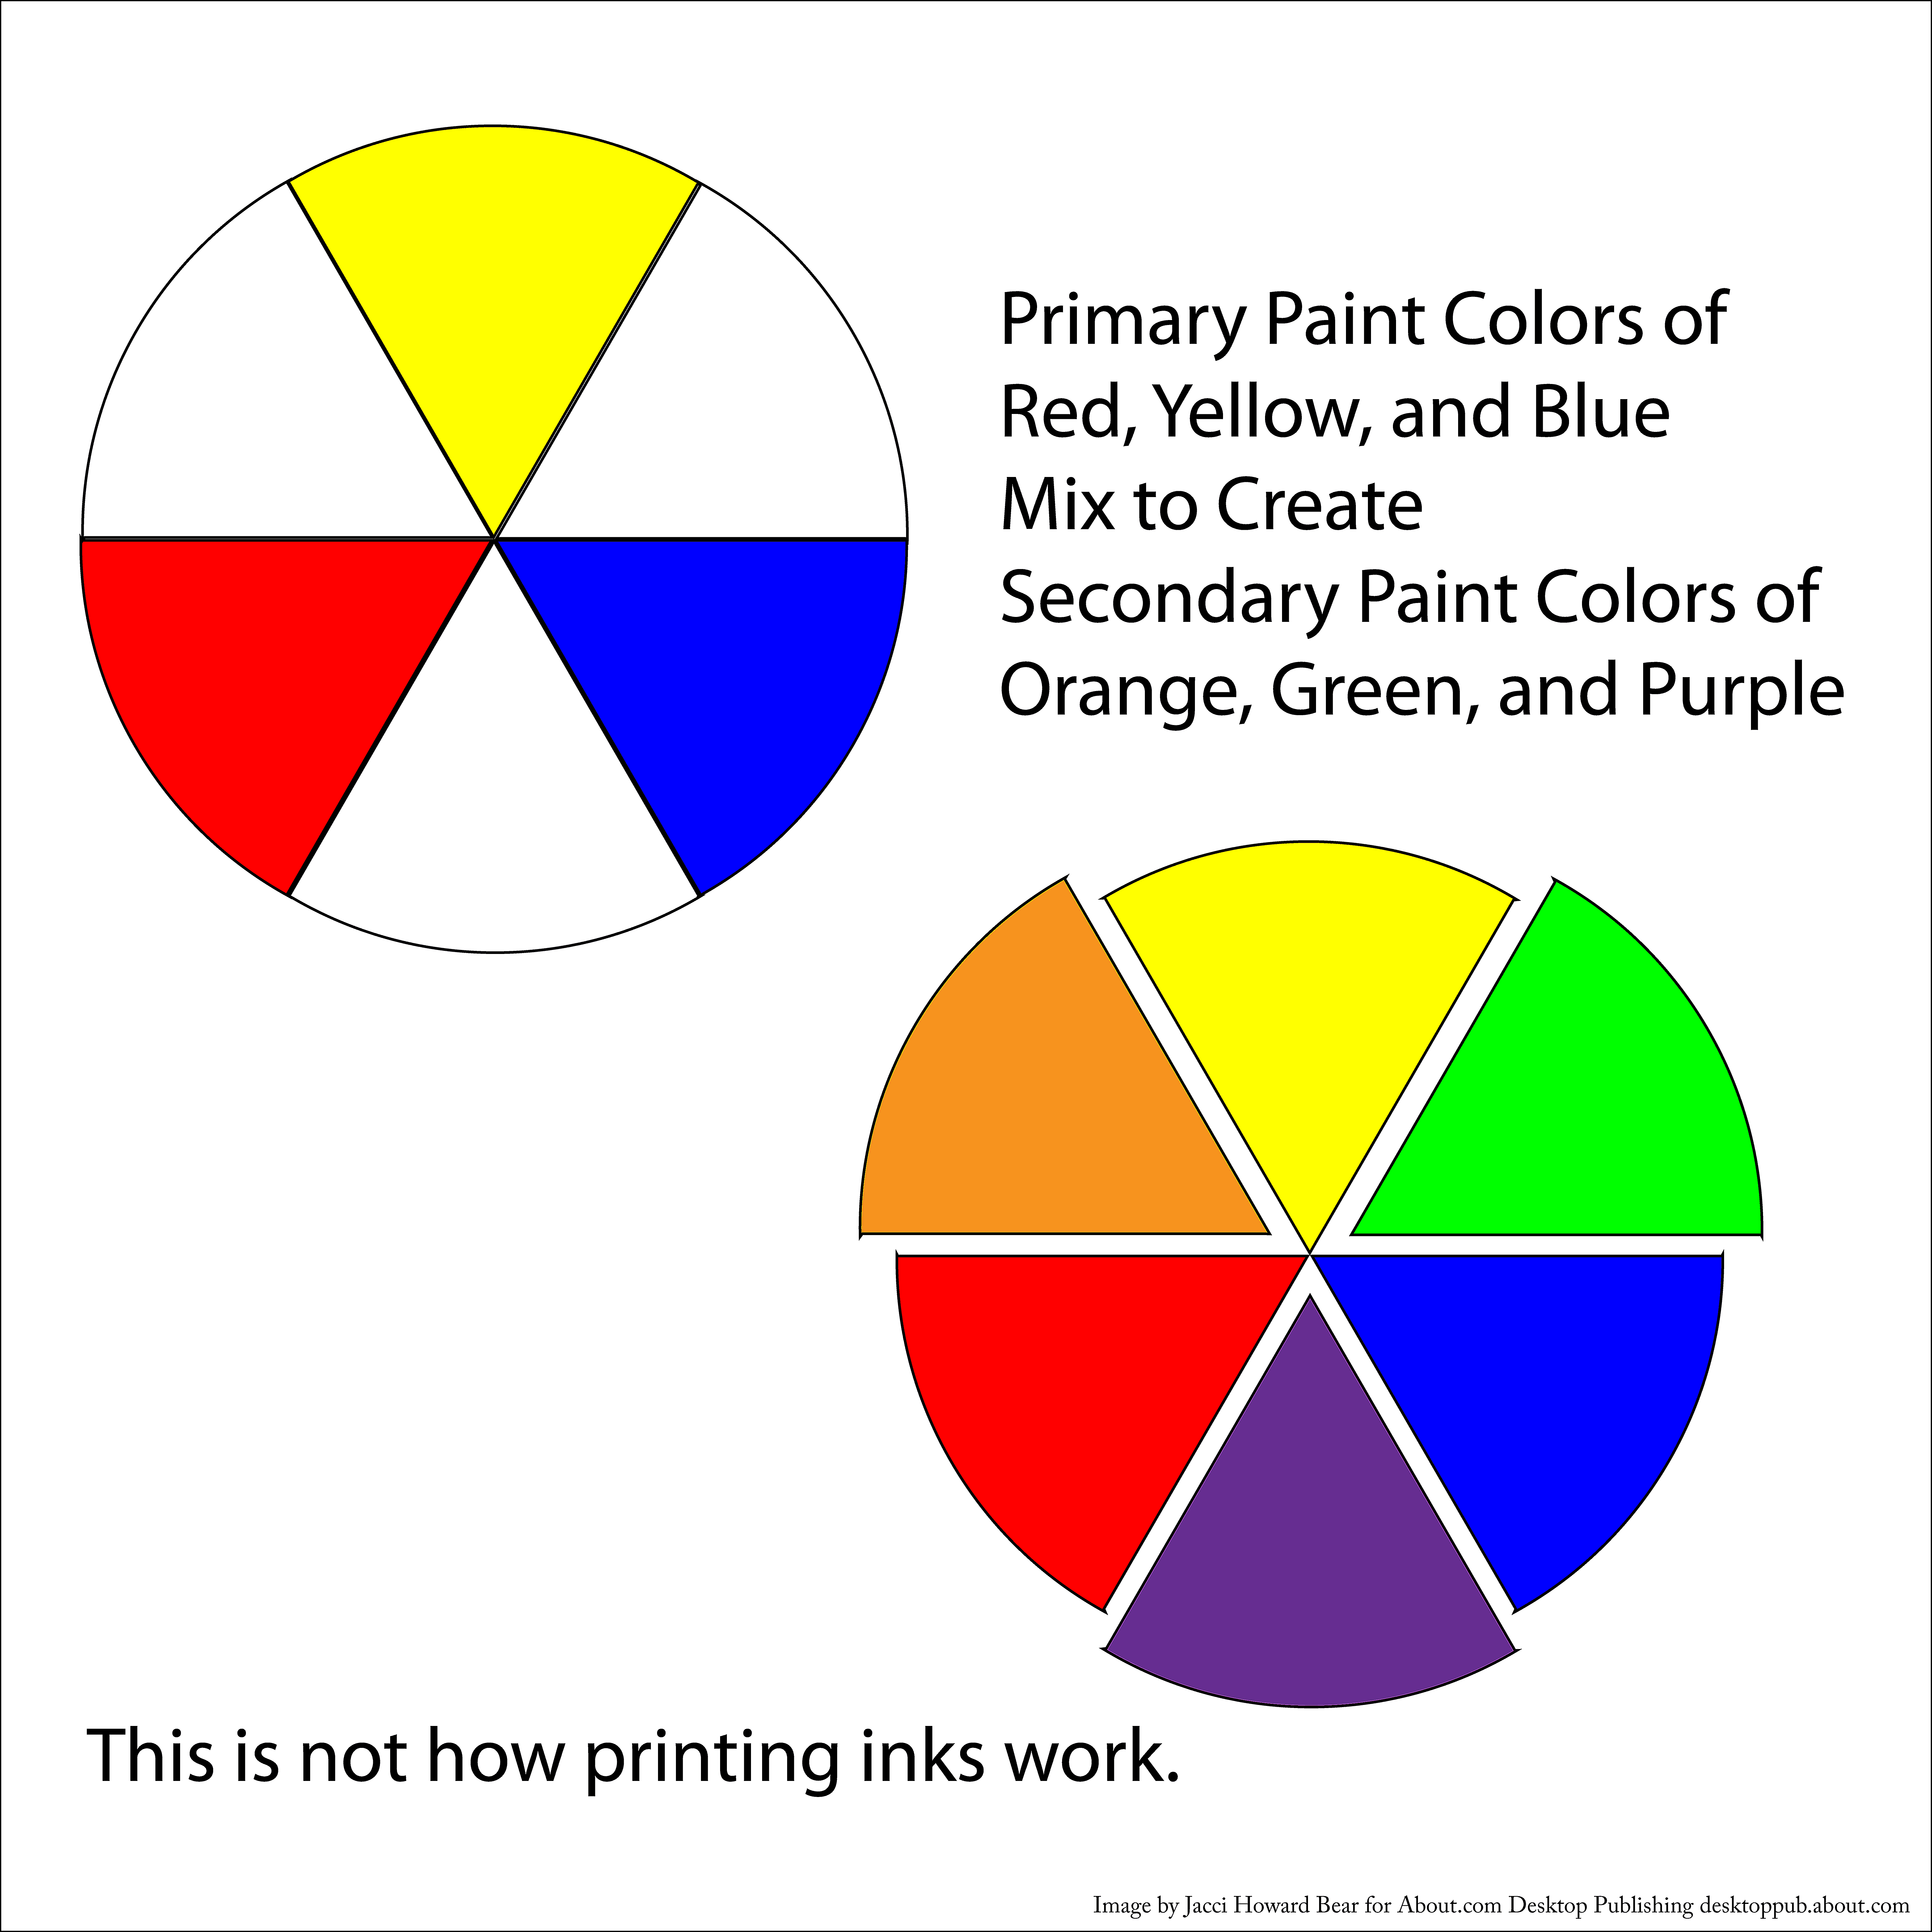 Color circle art publishing - Color Circle Art Publishing 50